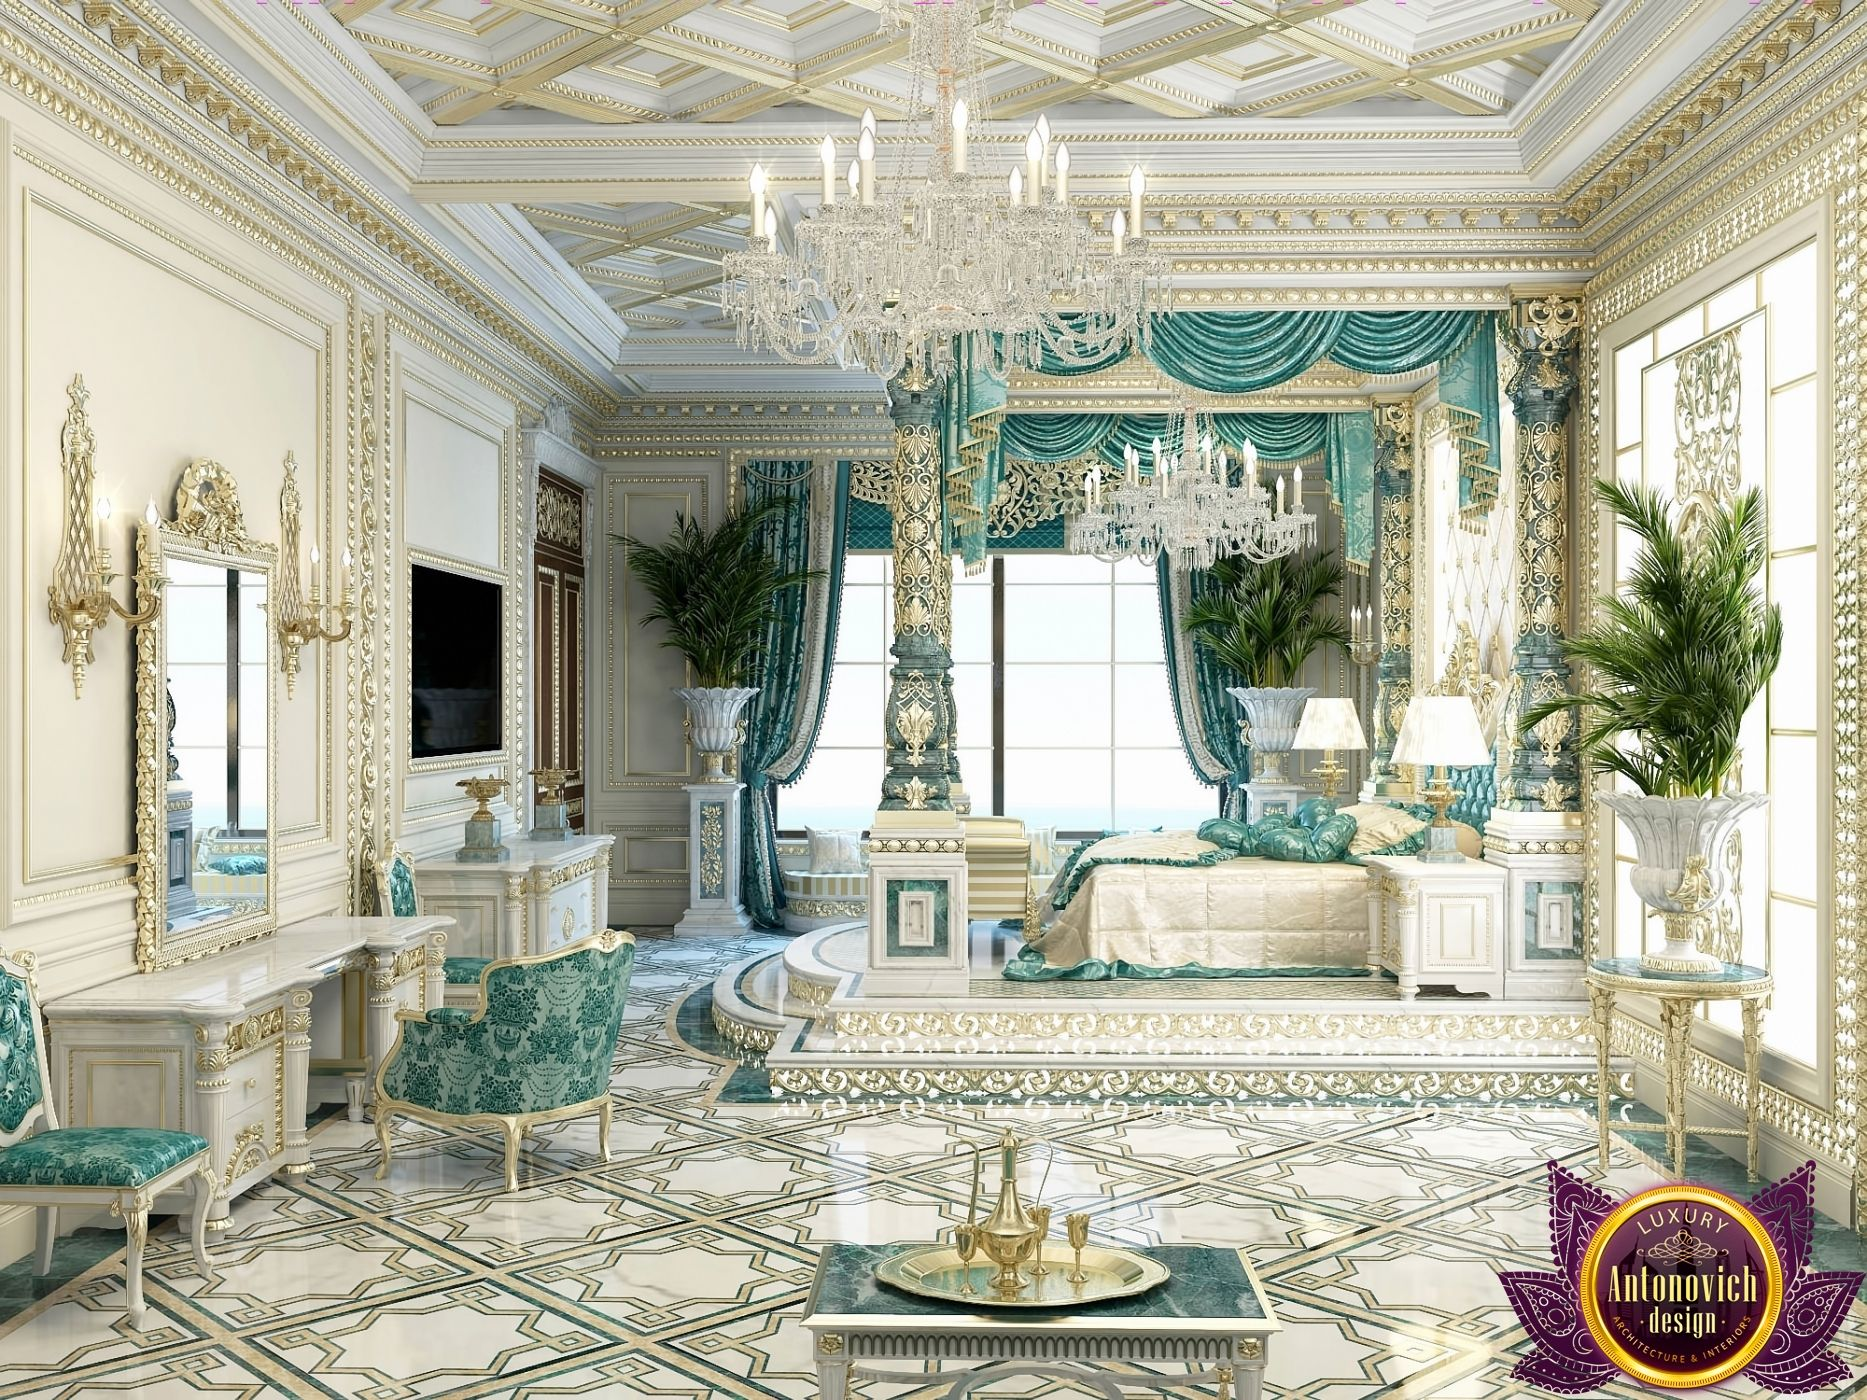 Bedroom Design in Dubai luxury Royal Master bedroom design